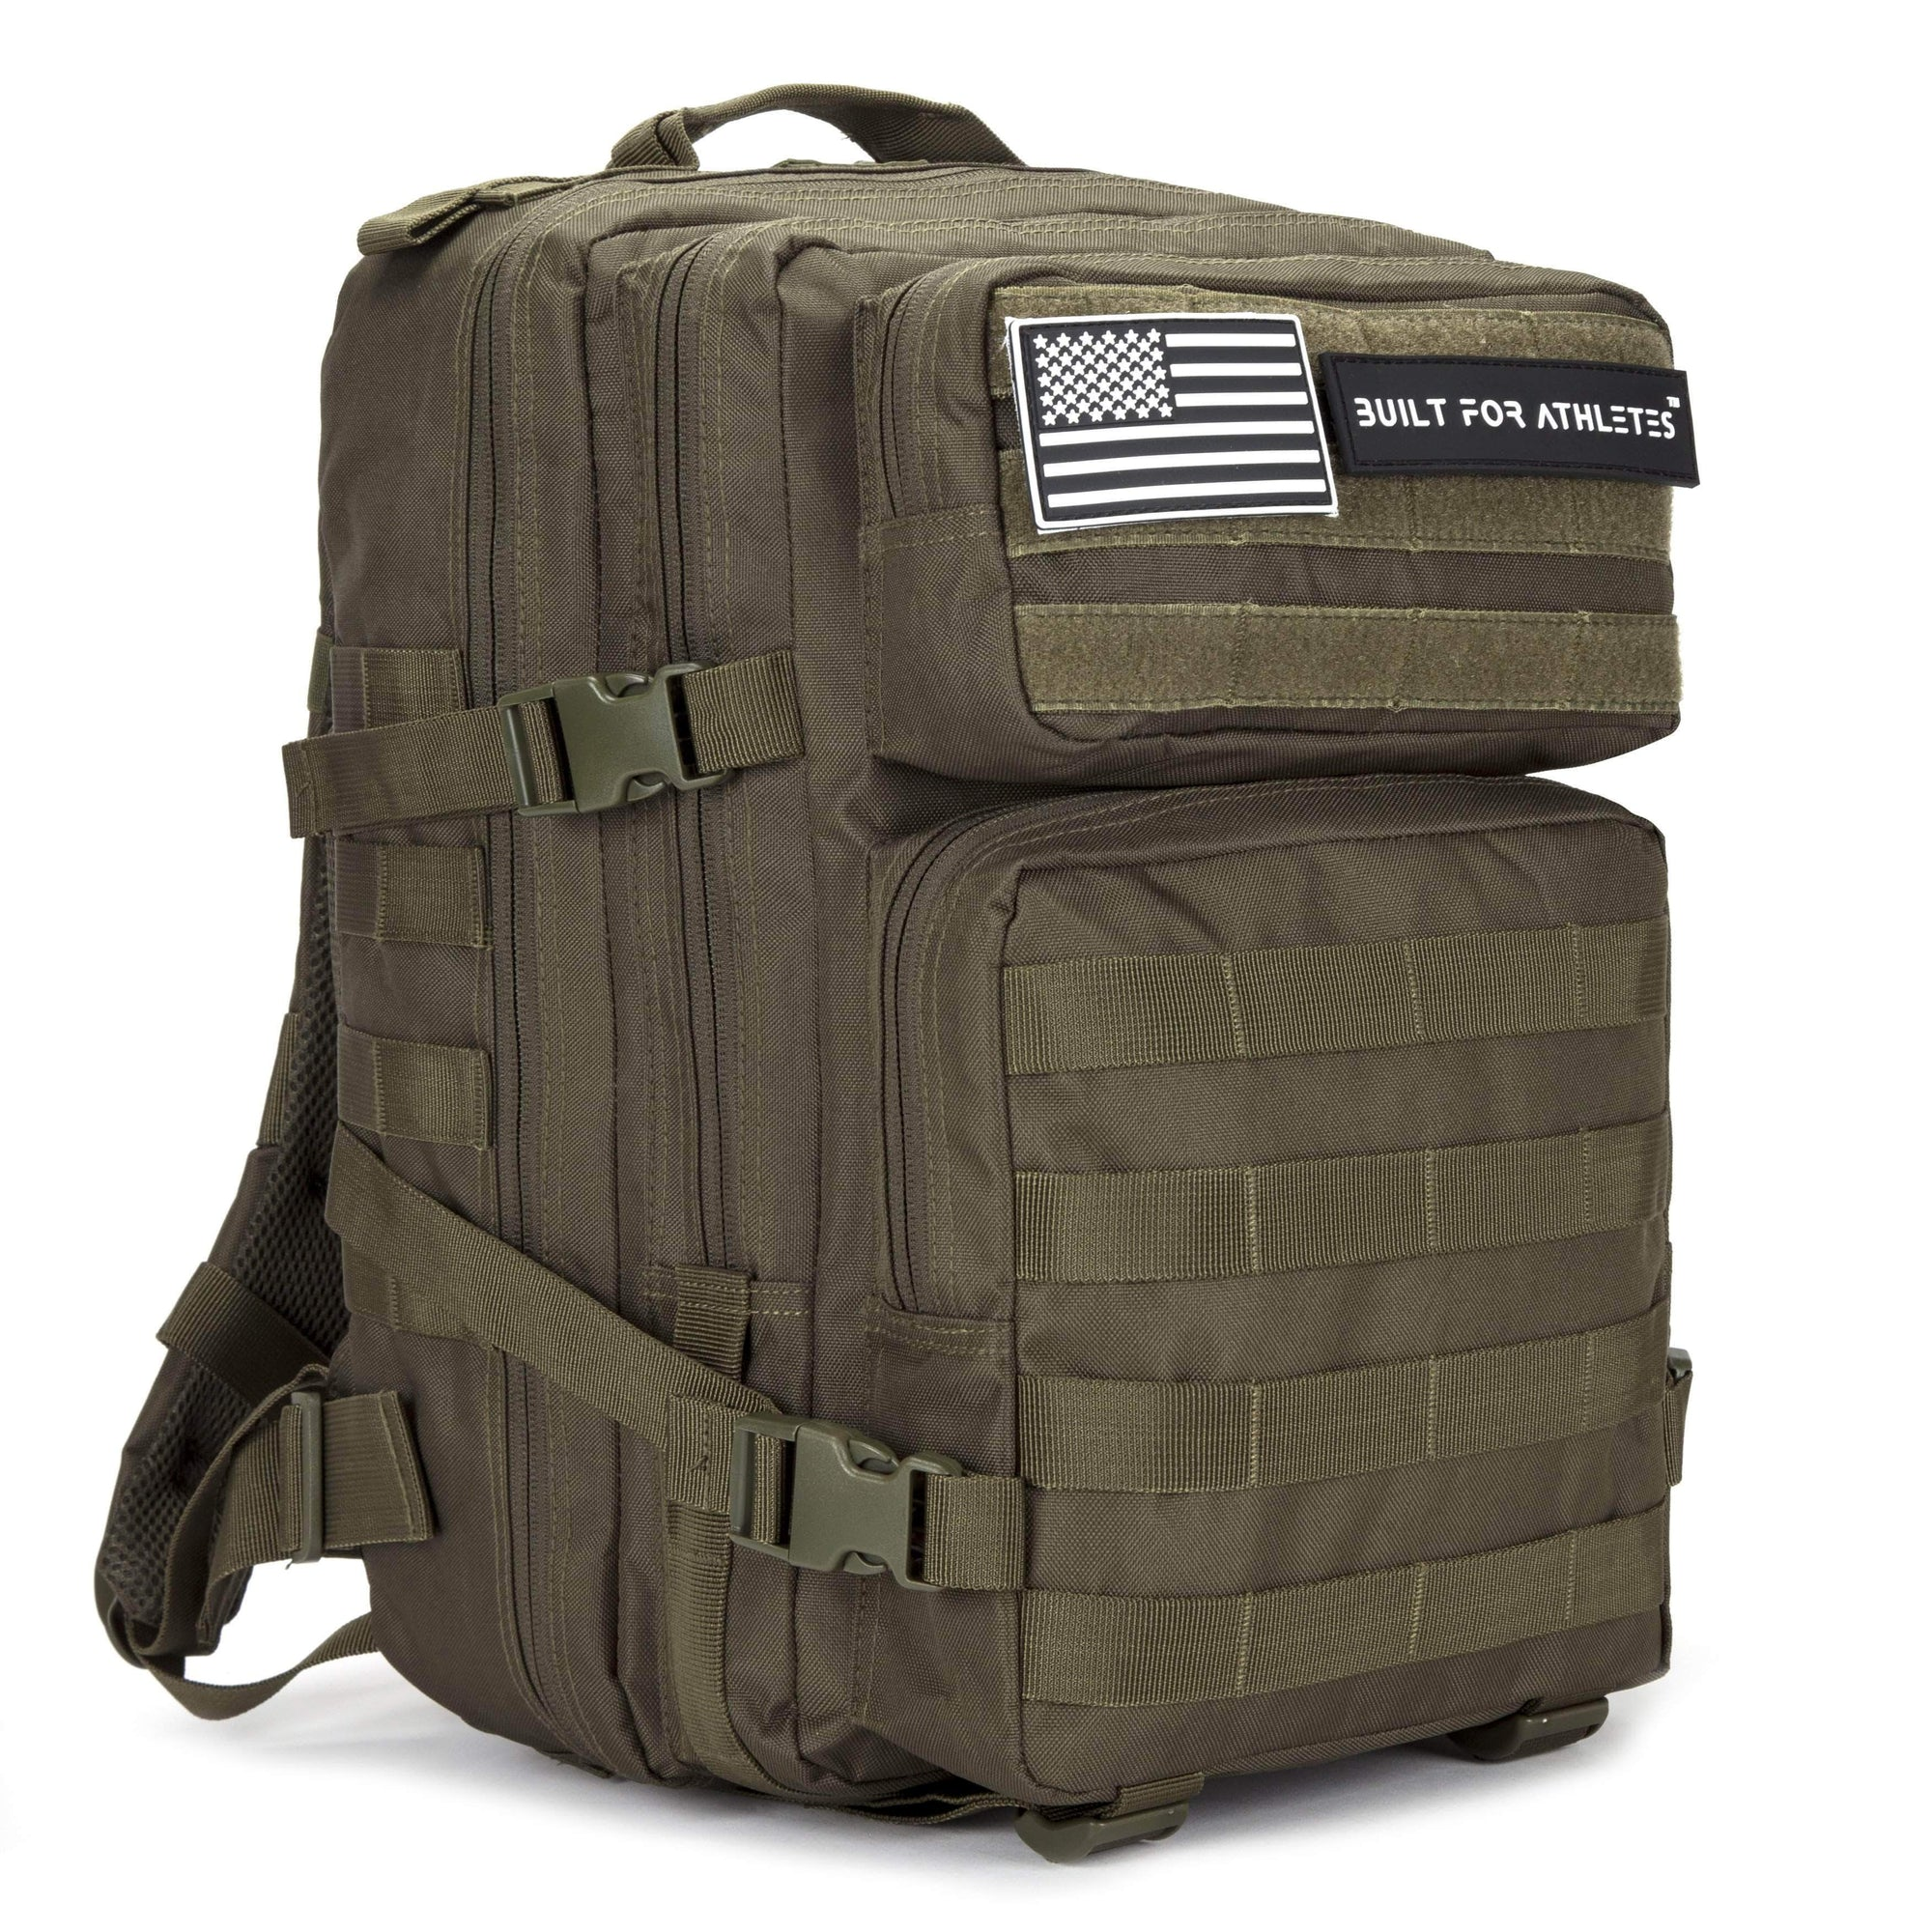 Built for Athletes Backpacks 25L Army Green Hero Backpack